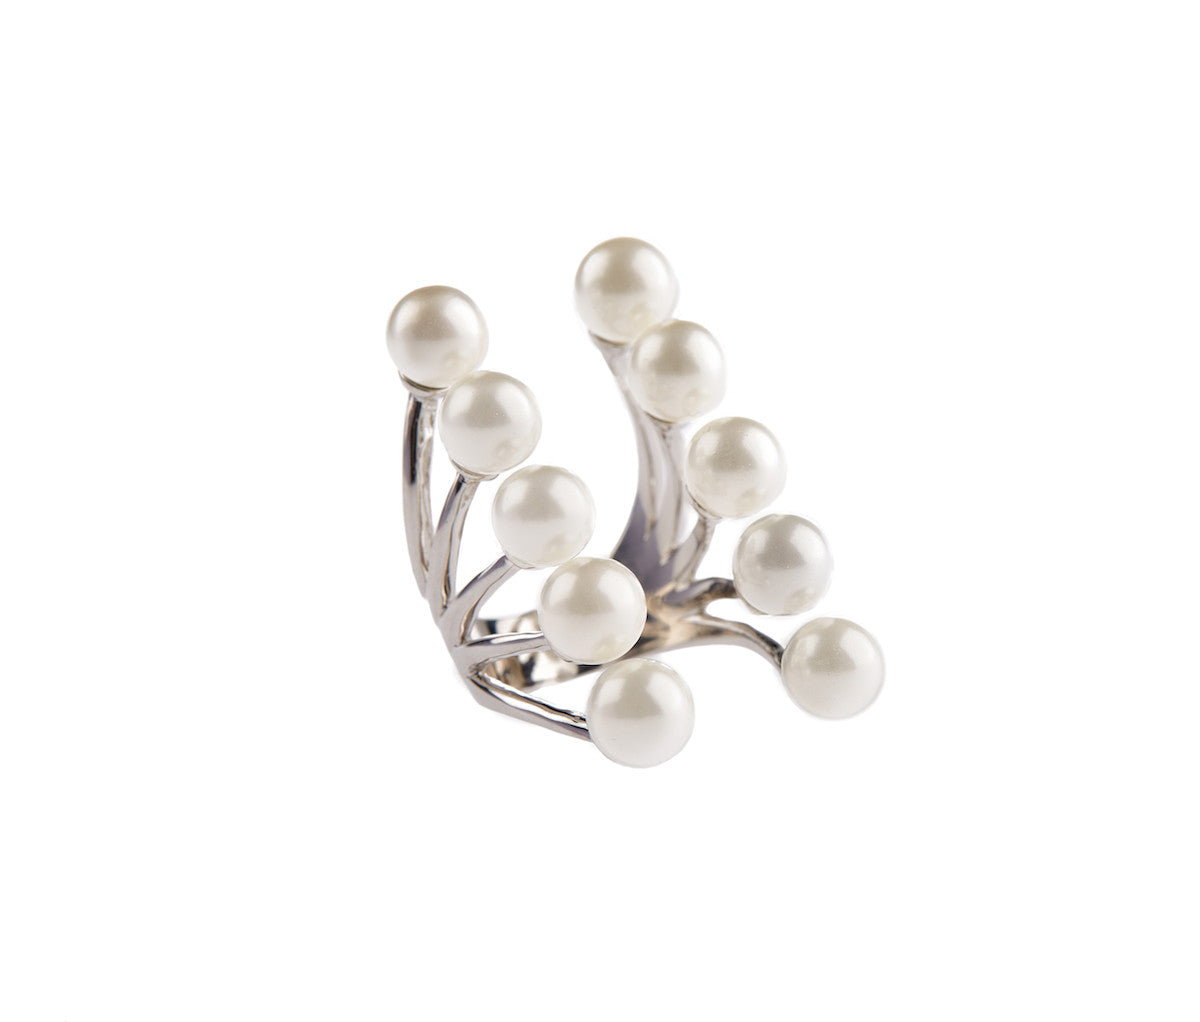 Silver Ring With 10 Pearls